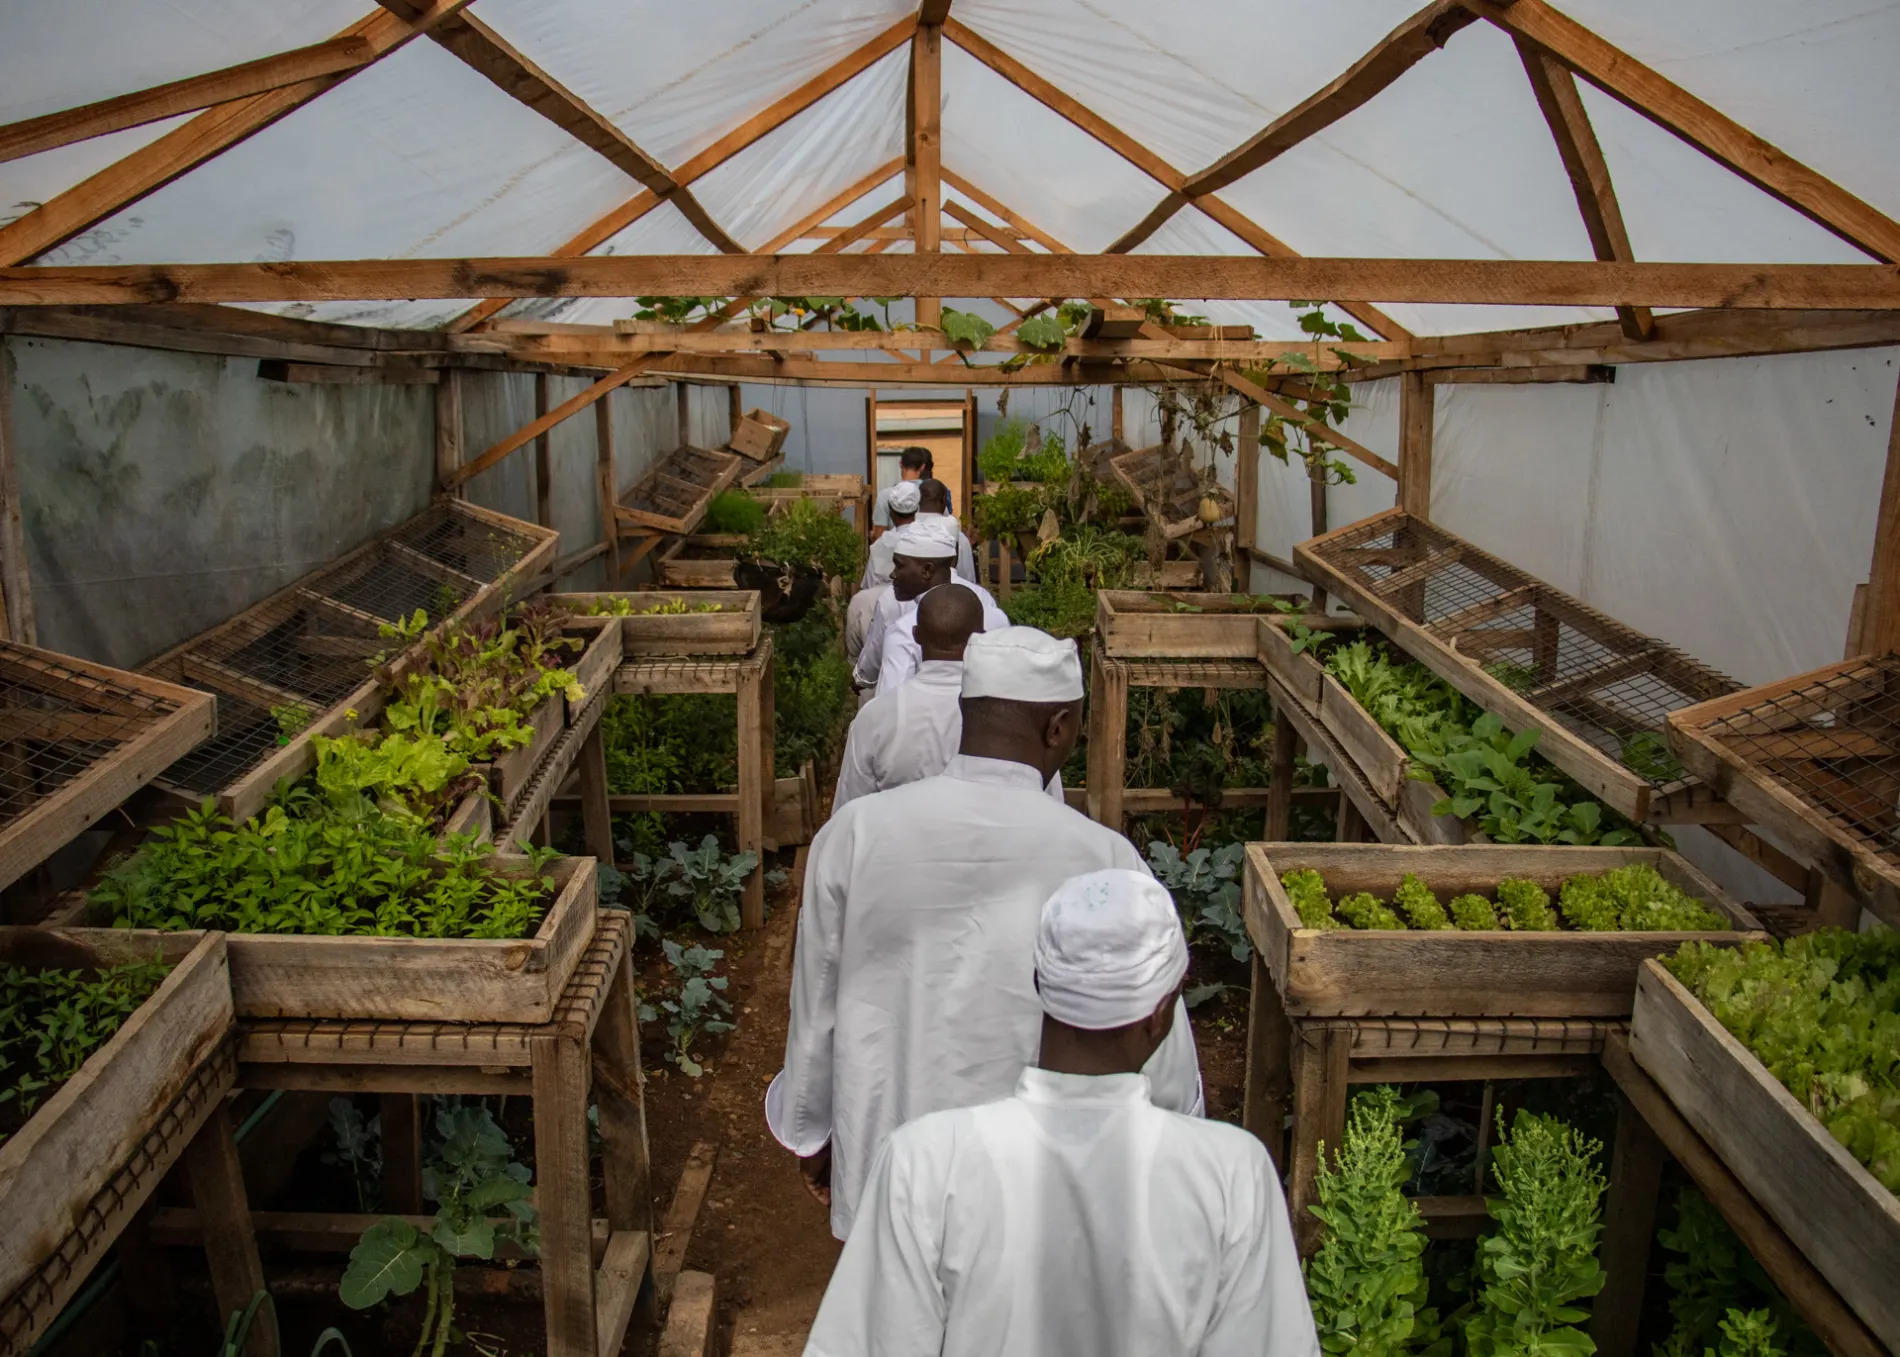 Chefs in the Green House